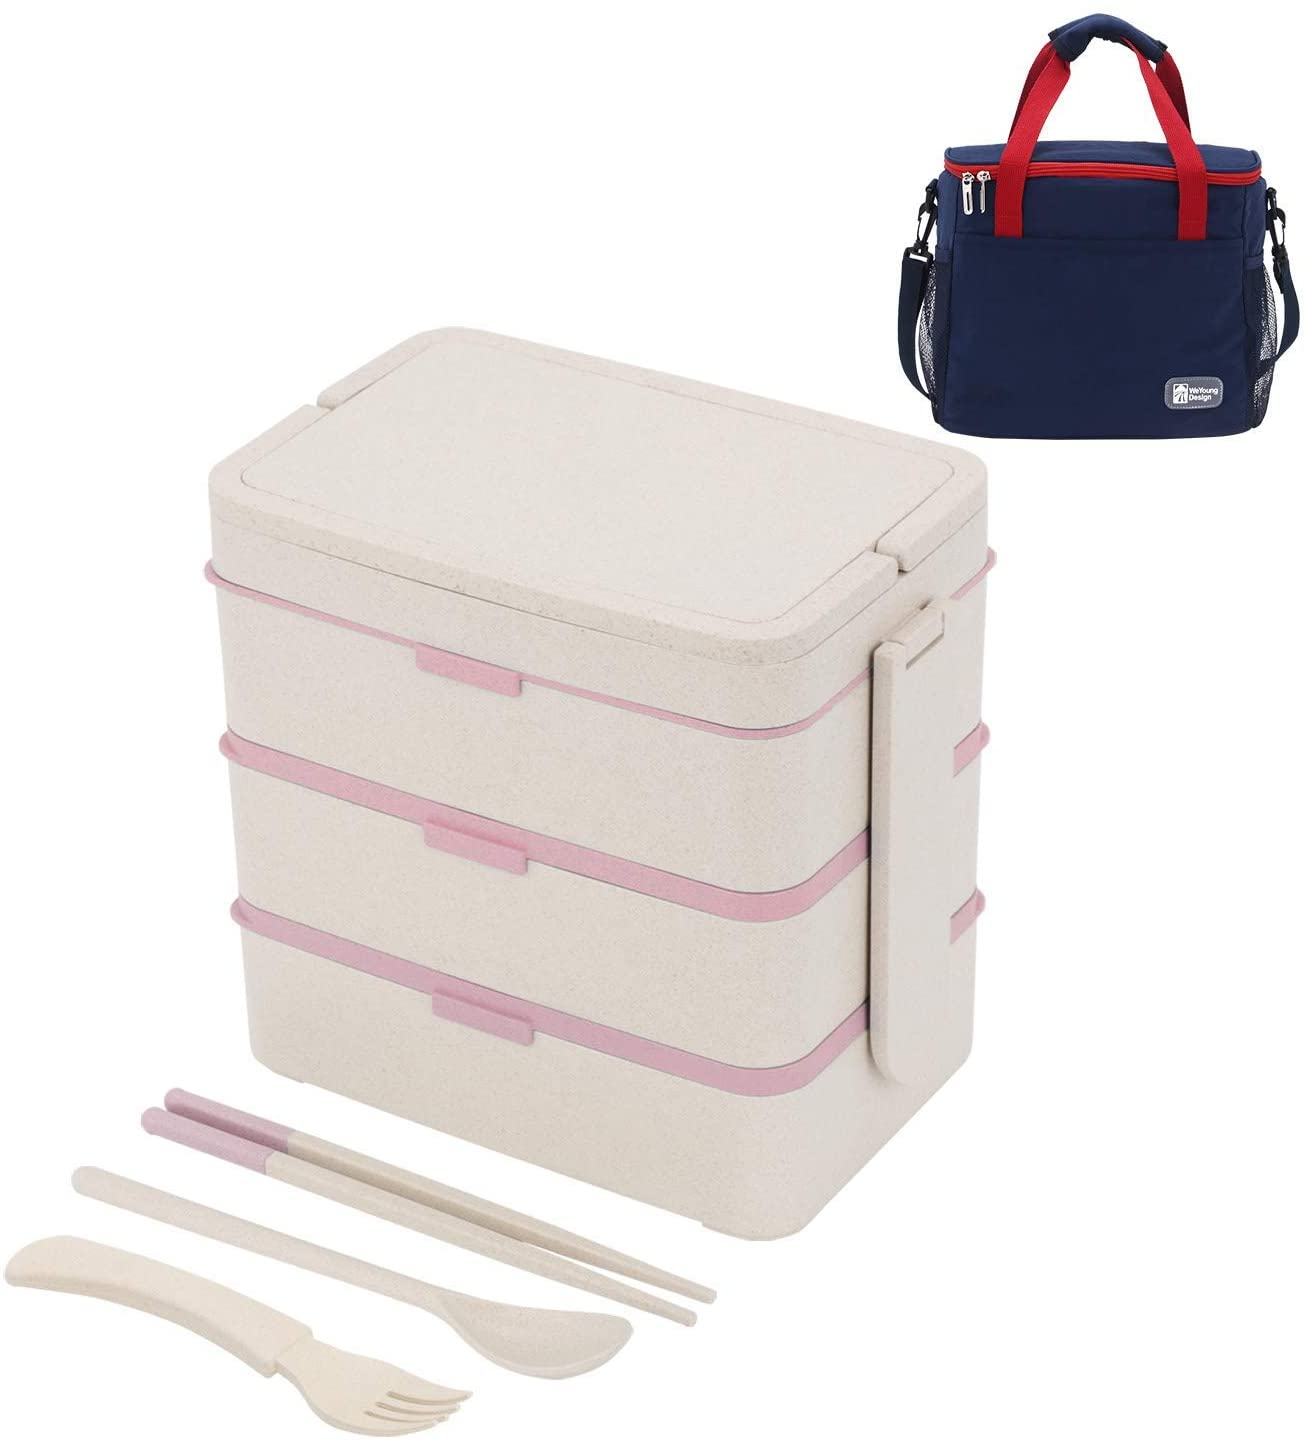 MorNon Lunch Box 3-Layer Bento Box Wheat Straw Eco-Friendly Lunch Box and Large Lunch Bag